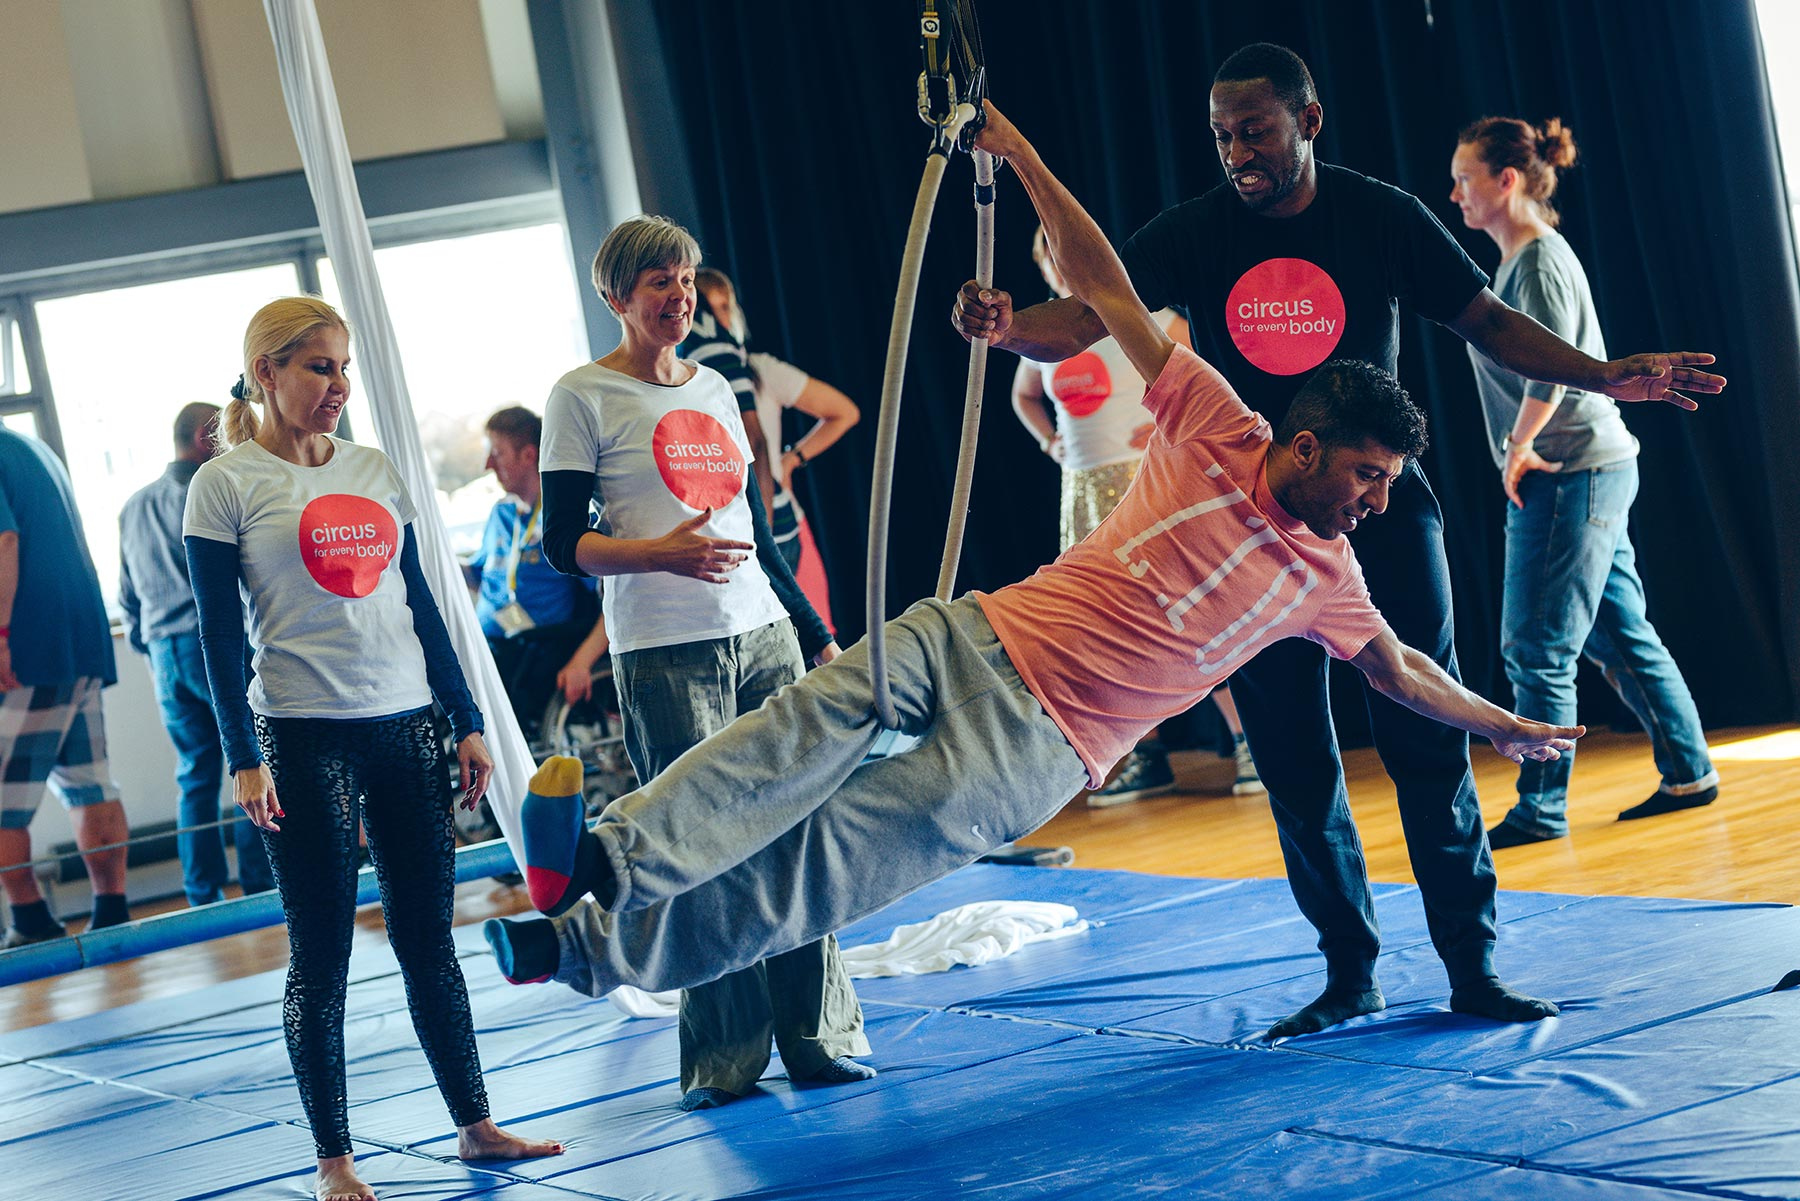 Extraordinary Bodies artists lead a workshop for aerial circus skills at Theatre Royal Plymouth.